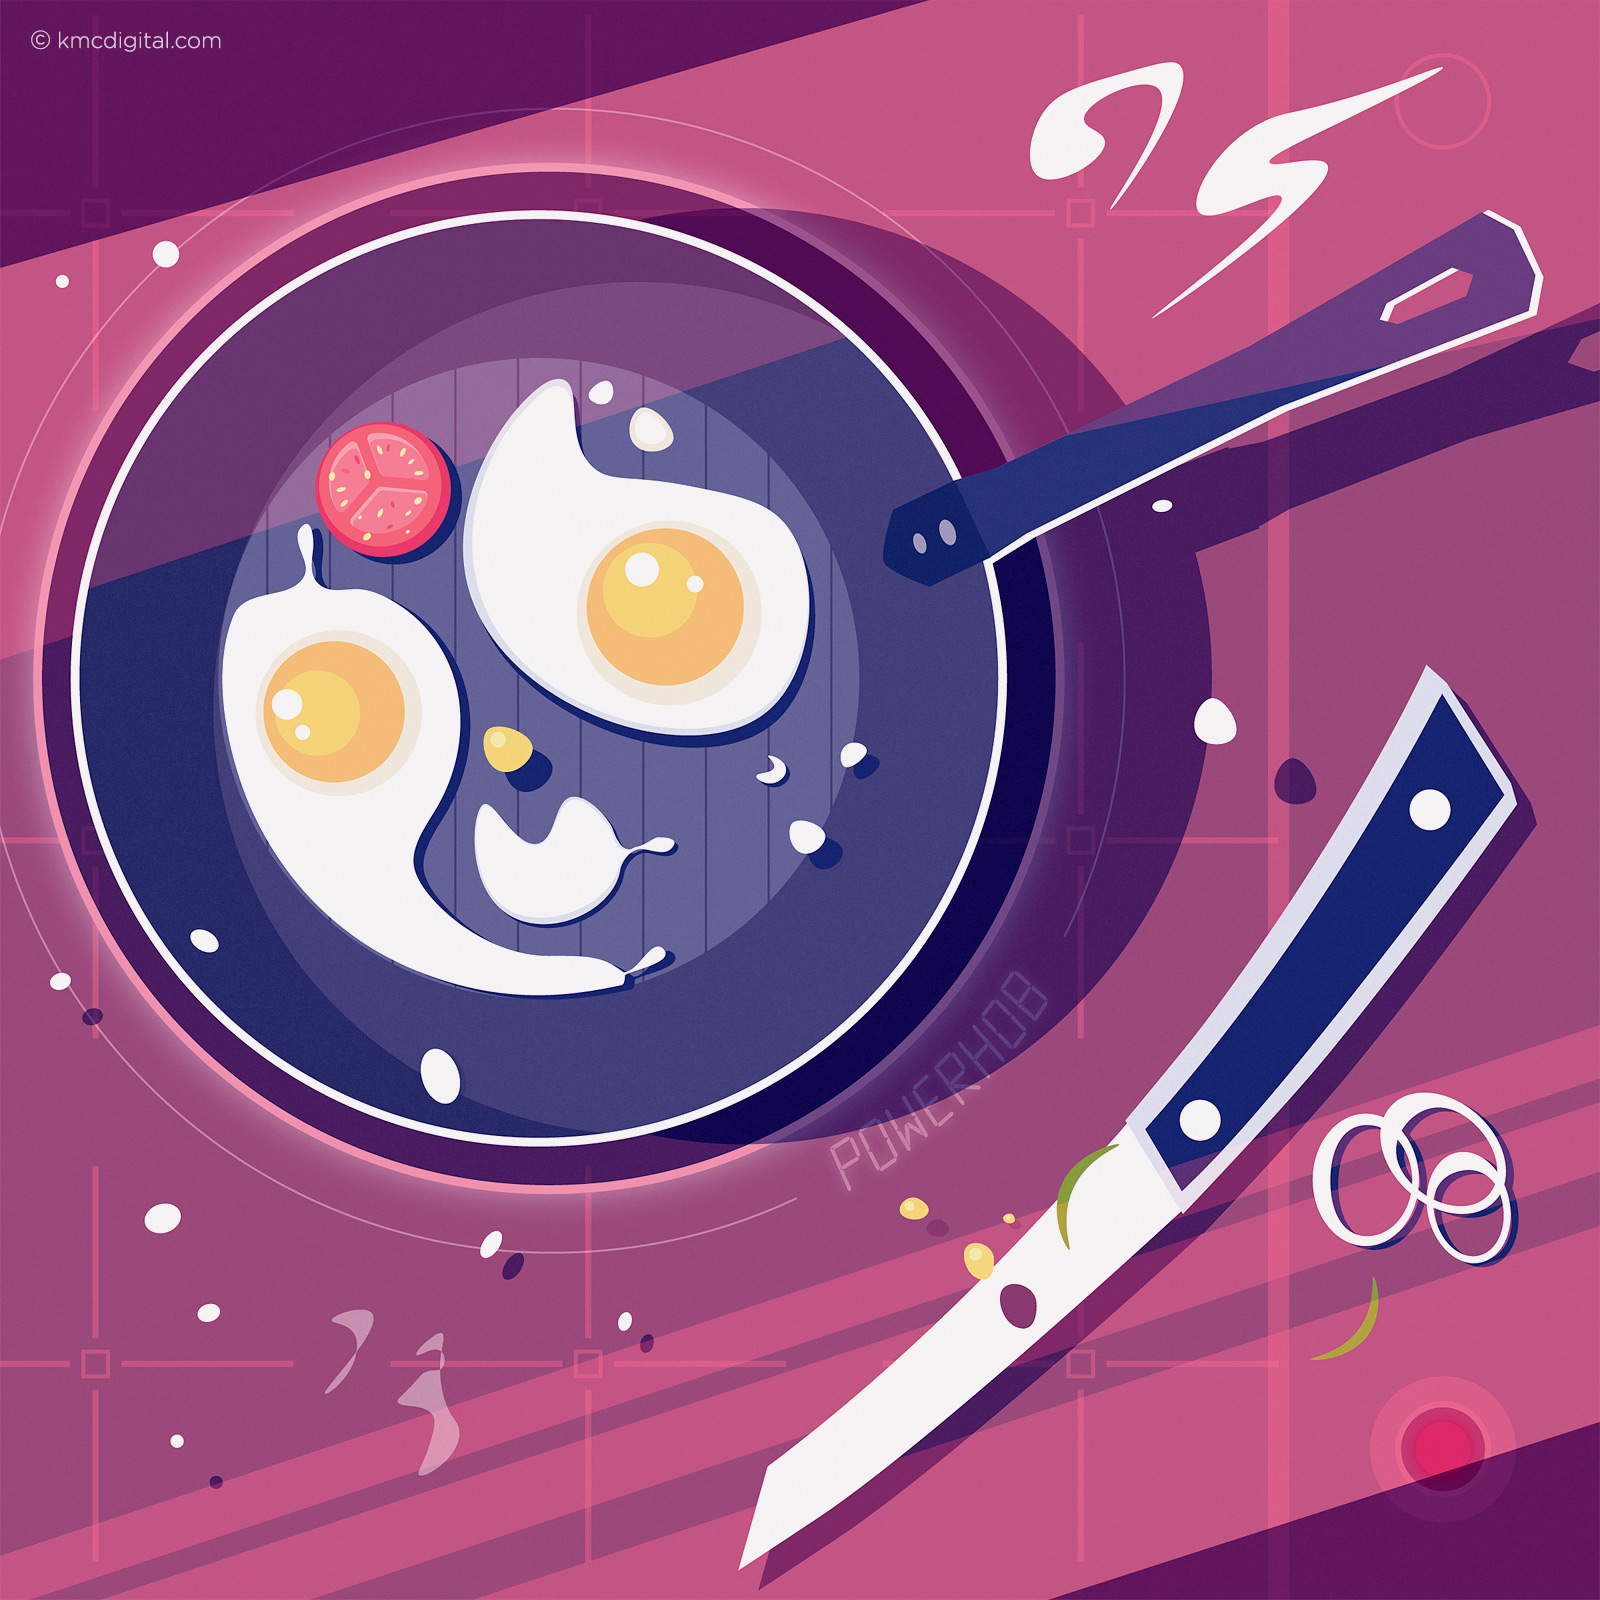 Illustration of frying pan and hob with eggs